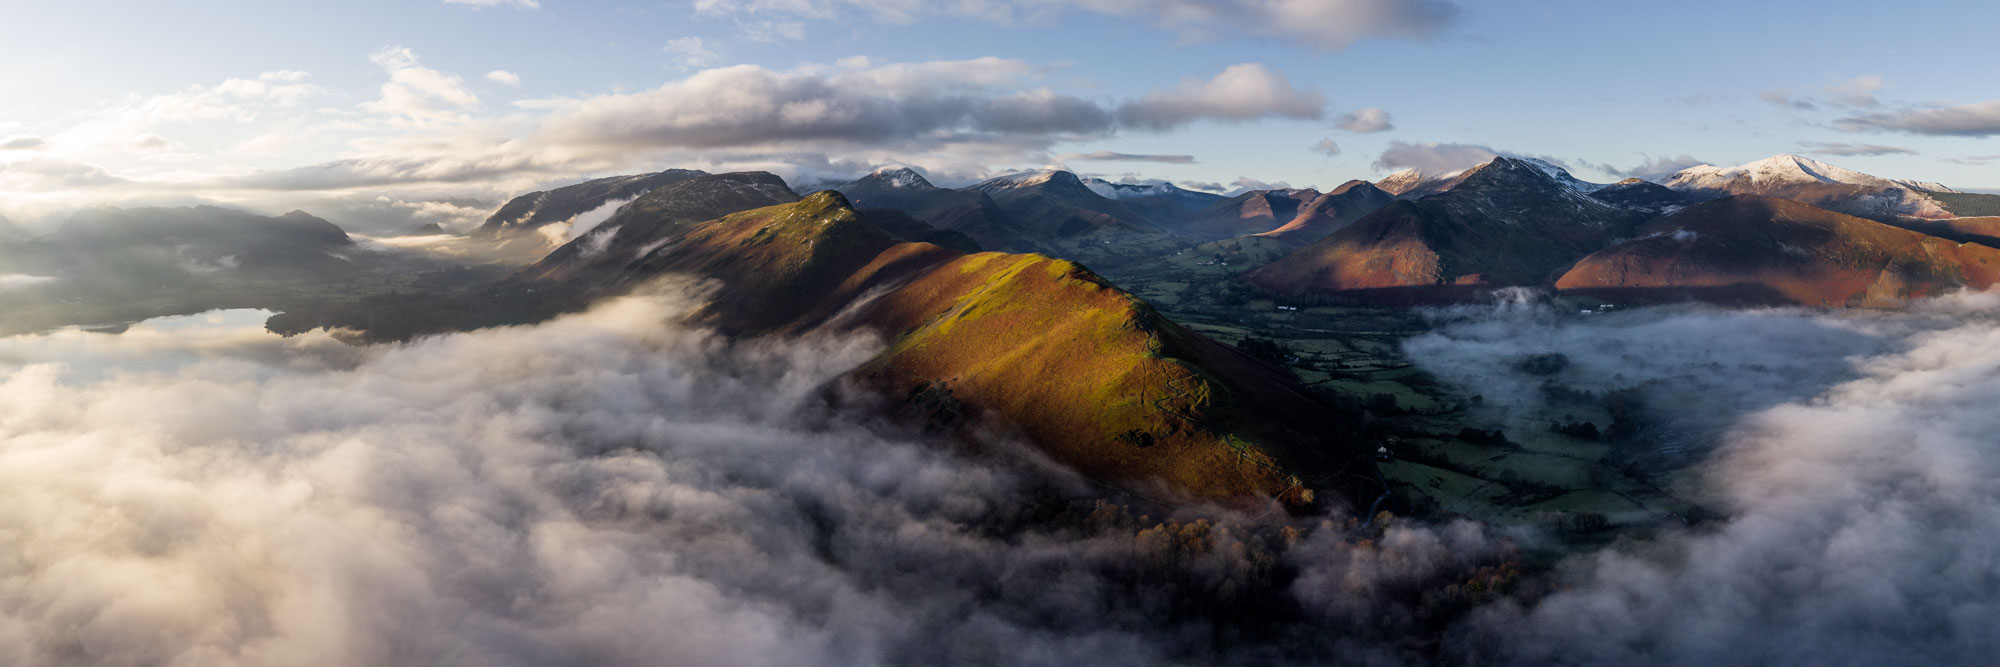 Panorama of Catbells fell surrounded by mist